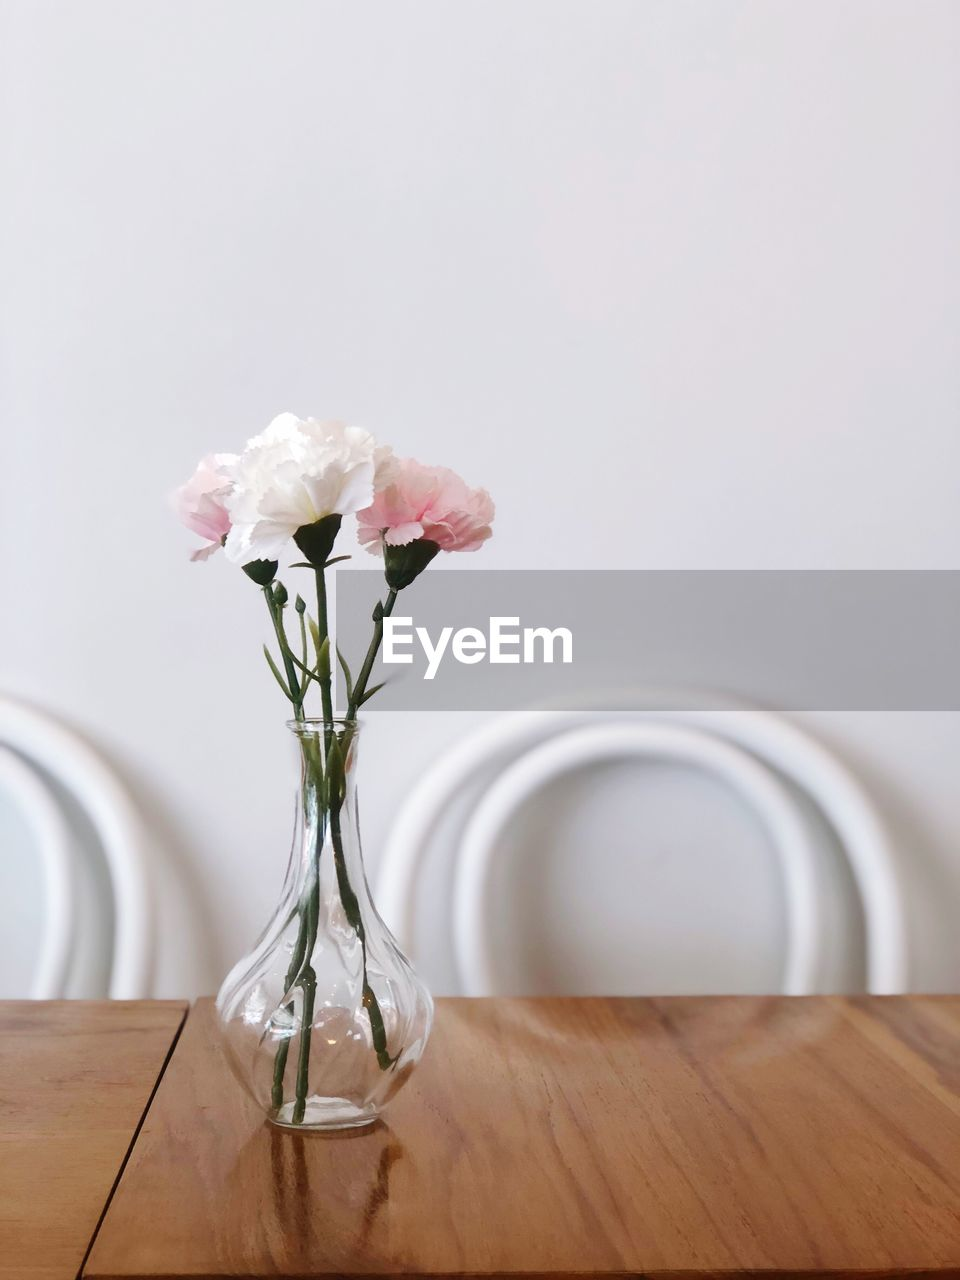 flower, flowering plant, table, plant, vase, indoors, fragility, vulnerability, beauty in nature, nature, no people, freshness, wood - material, close-up, petal, flower head, glass - material, rose, decoration, pink color, flower arrangement, purple